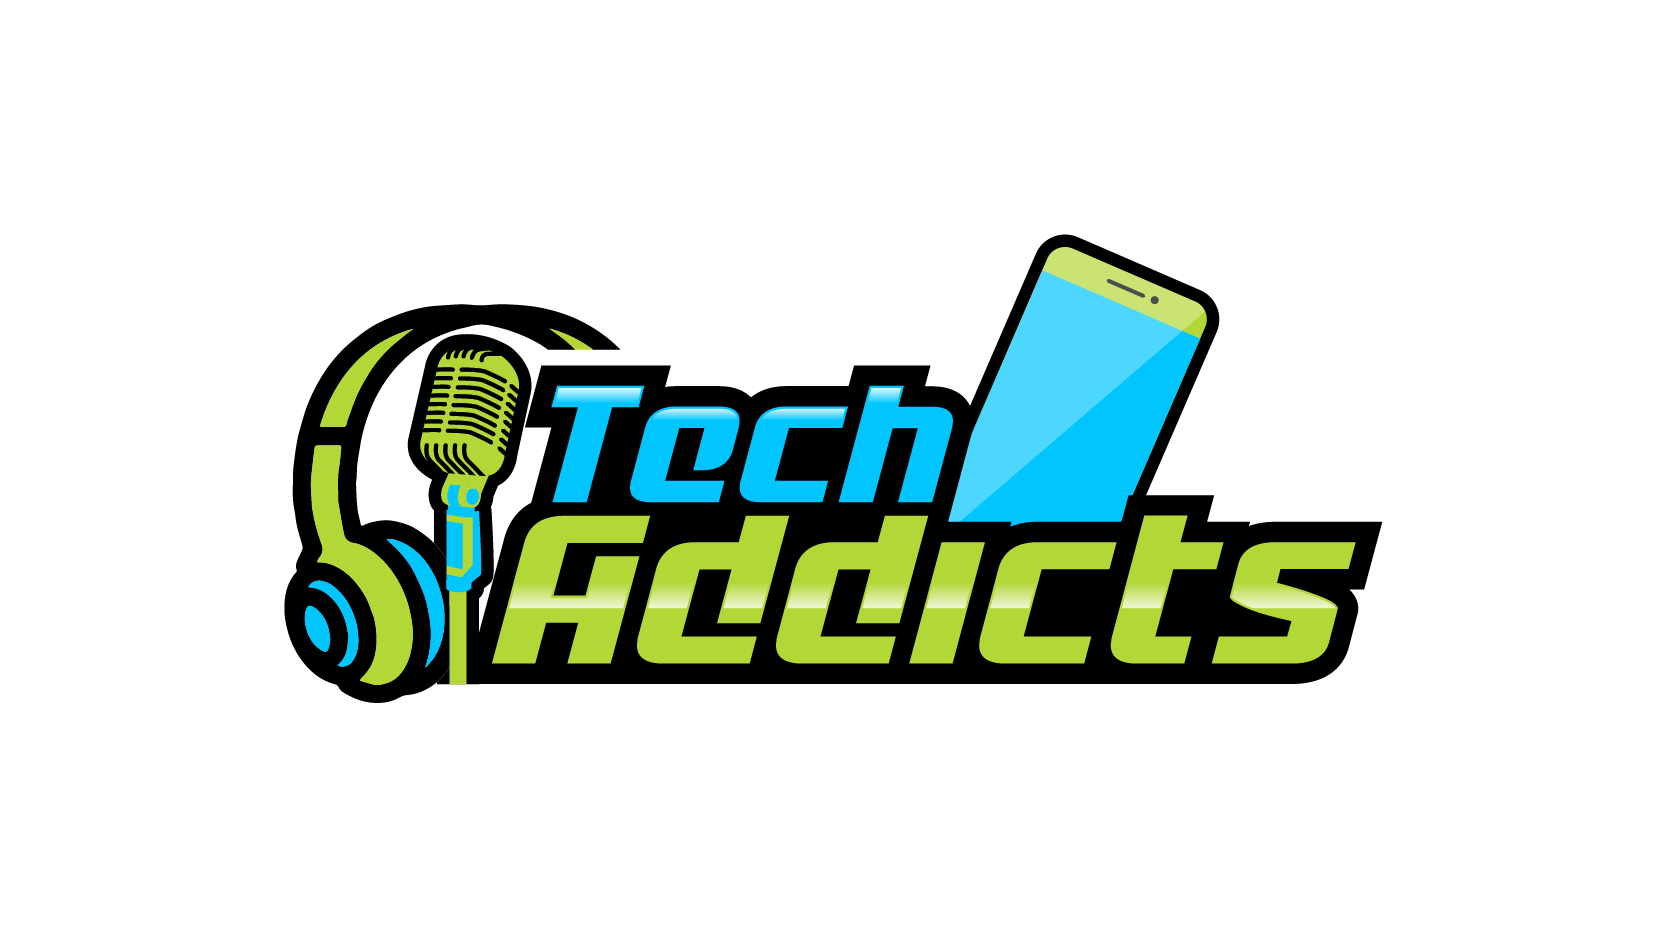 Tech Addicts Podcast – 18th April 2021 – Parts 1 & 2 available now